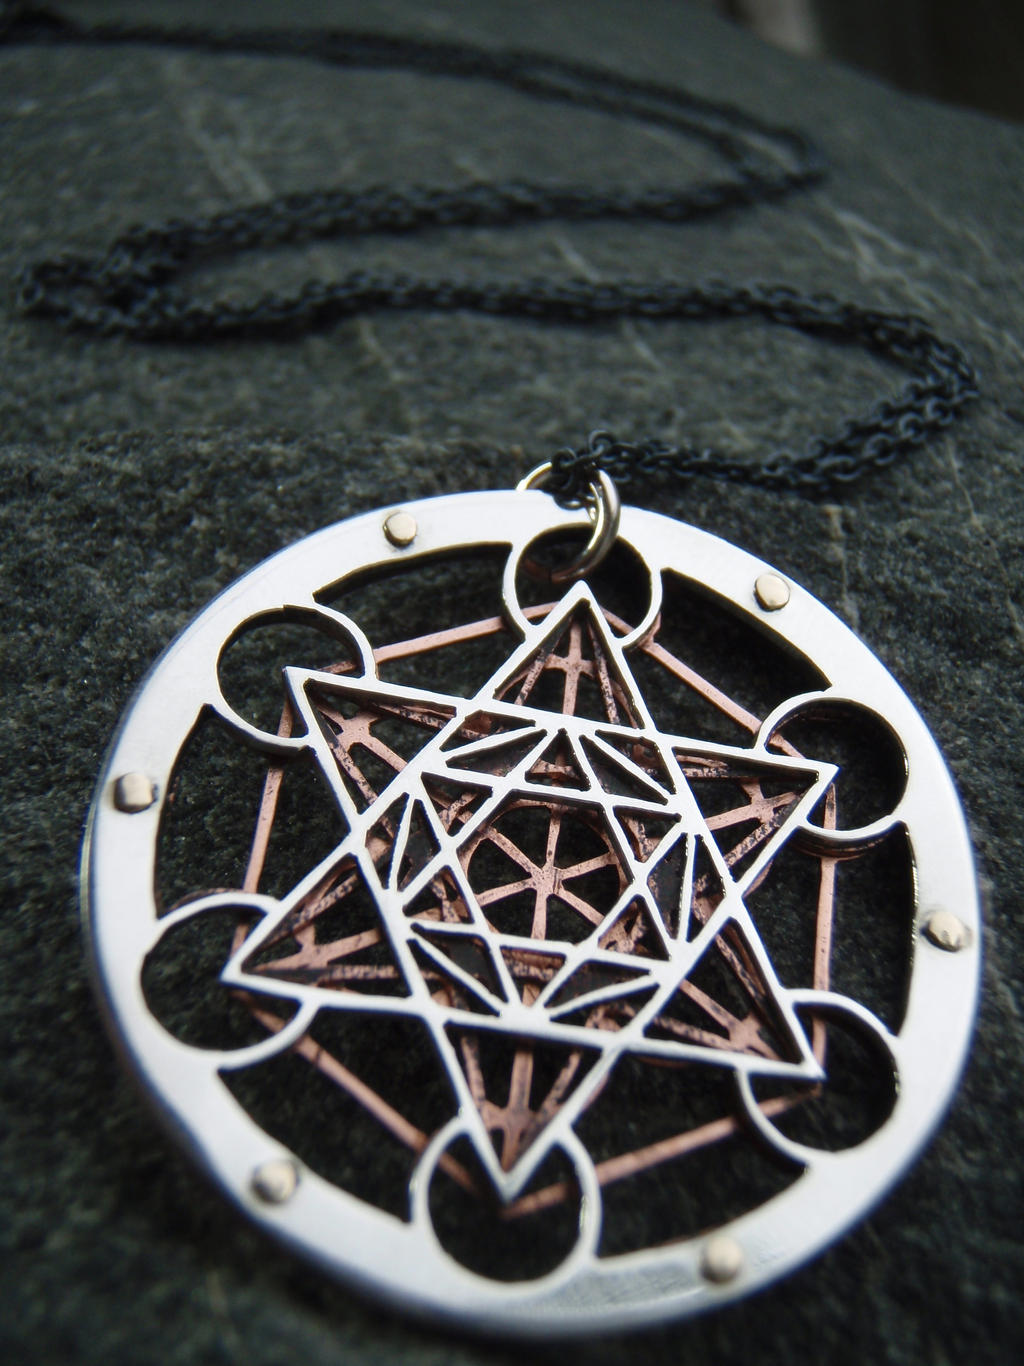 Silver and copper metatron 39 s cube pendant by jeanburgers for Metatron s cube jewelry